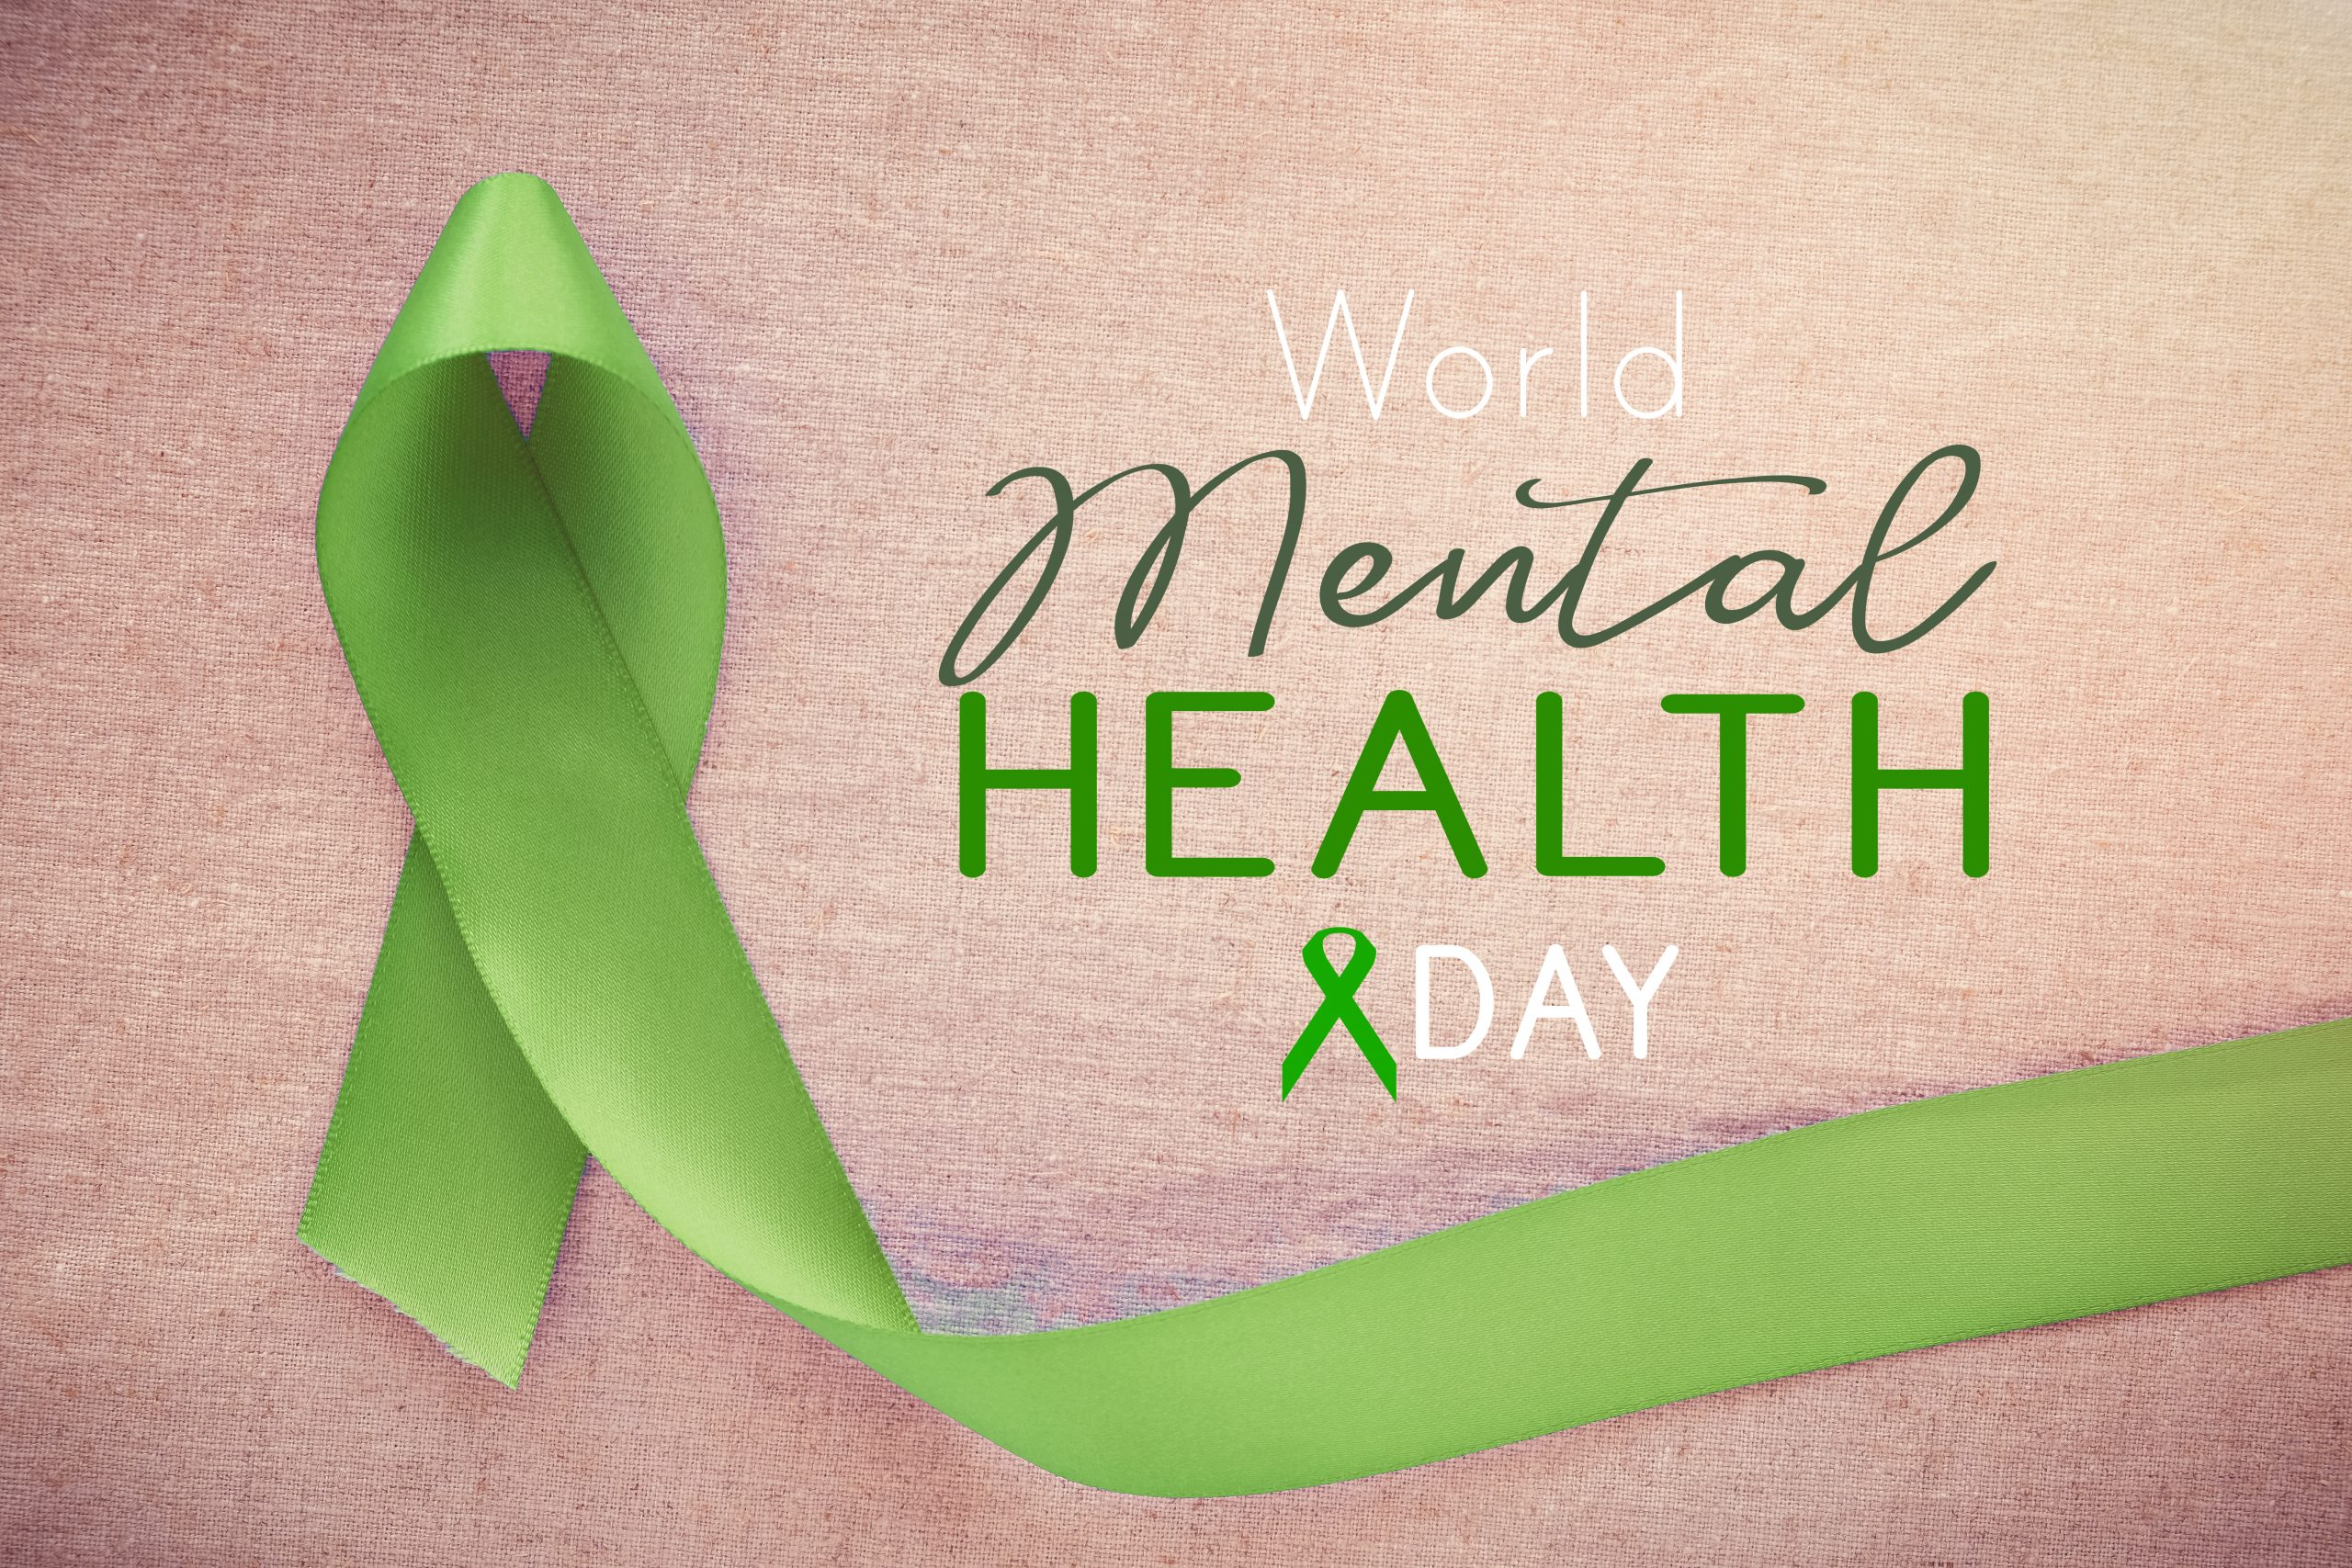 World Mental Heath Day image